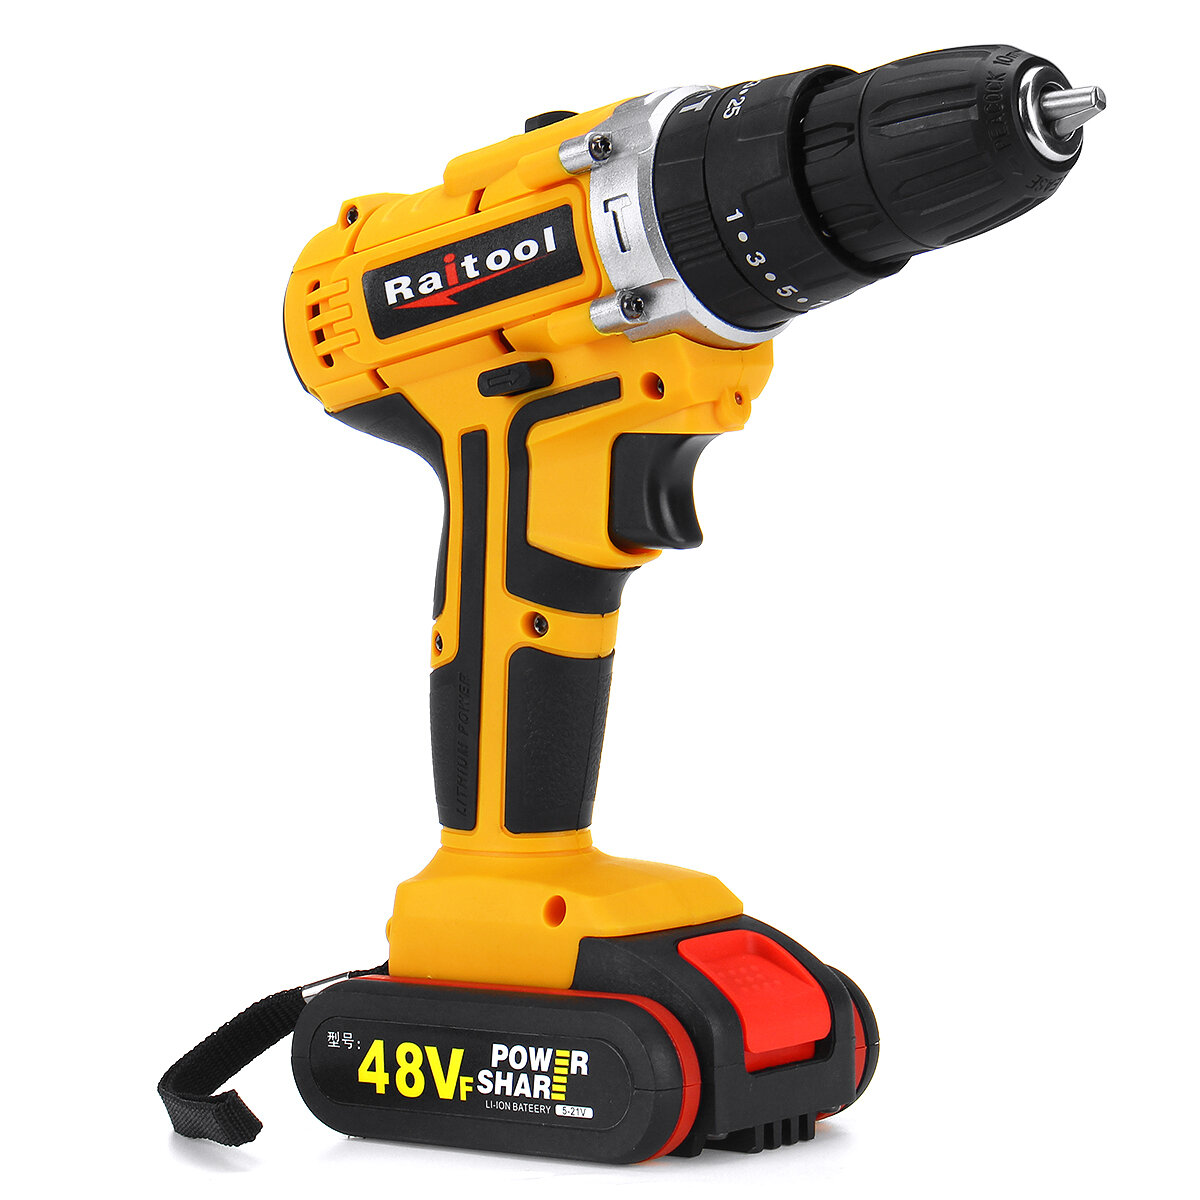 48V 3 In 1 Cordless Power Drills 15+1 Torque Drilling Tool Dual Speed Electric Screwdriver Drill W/ 1 or 2 Li-ion Battery - 4